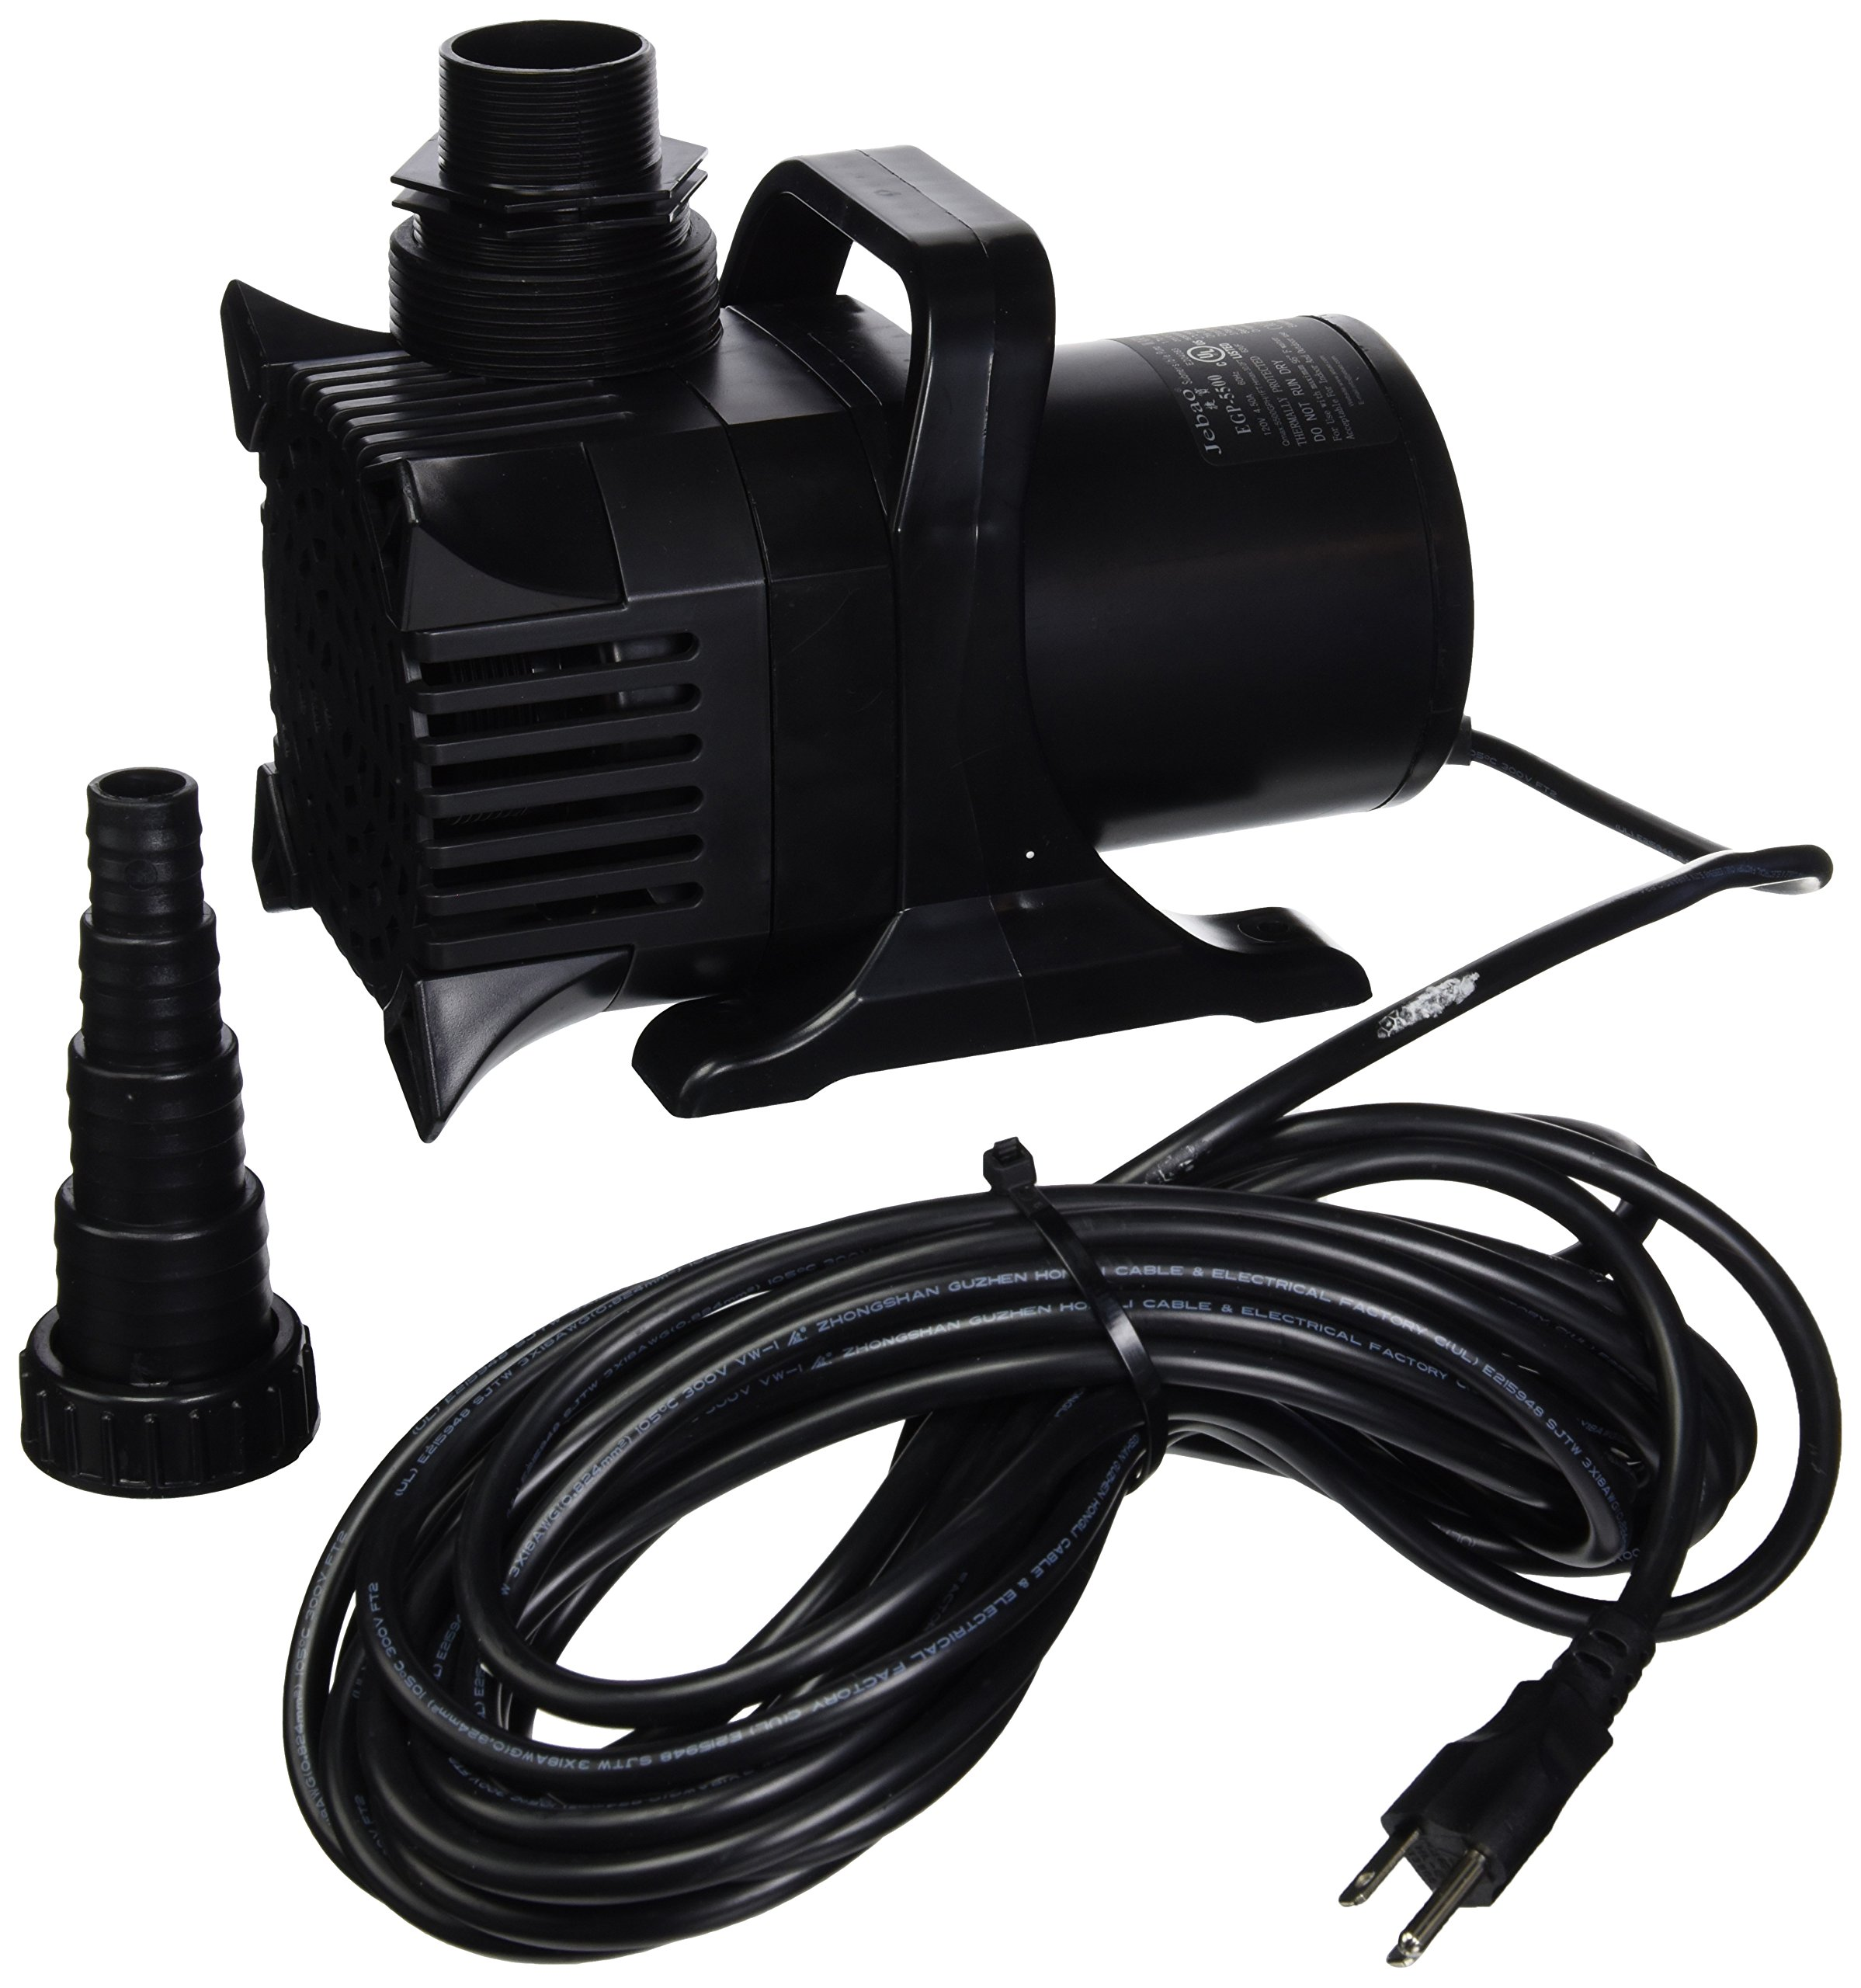 Algreen MaxFlo 20000 to 5500 GPH Pond and Waterfall Pump for Gardening by Algreen